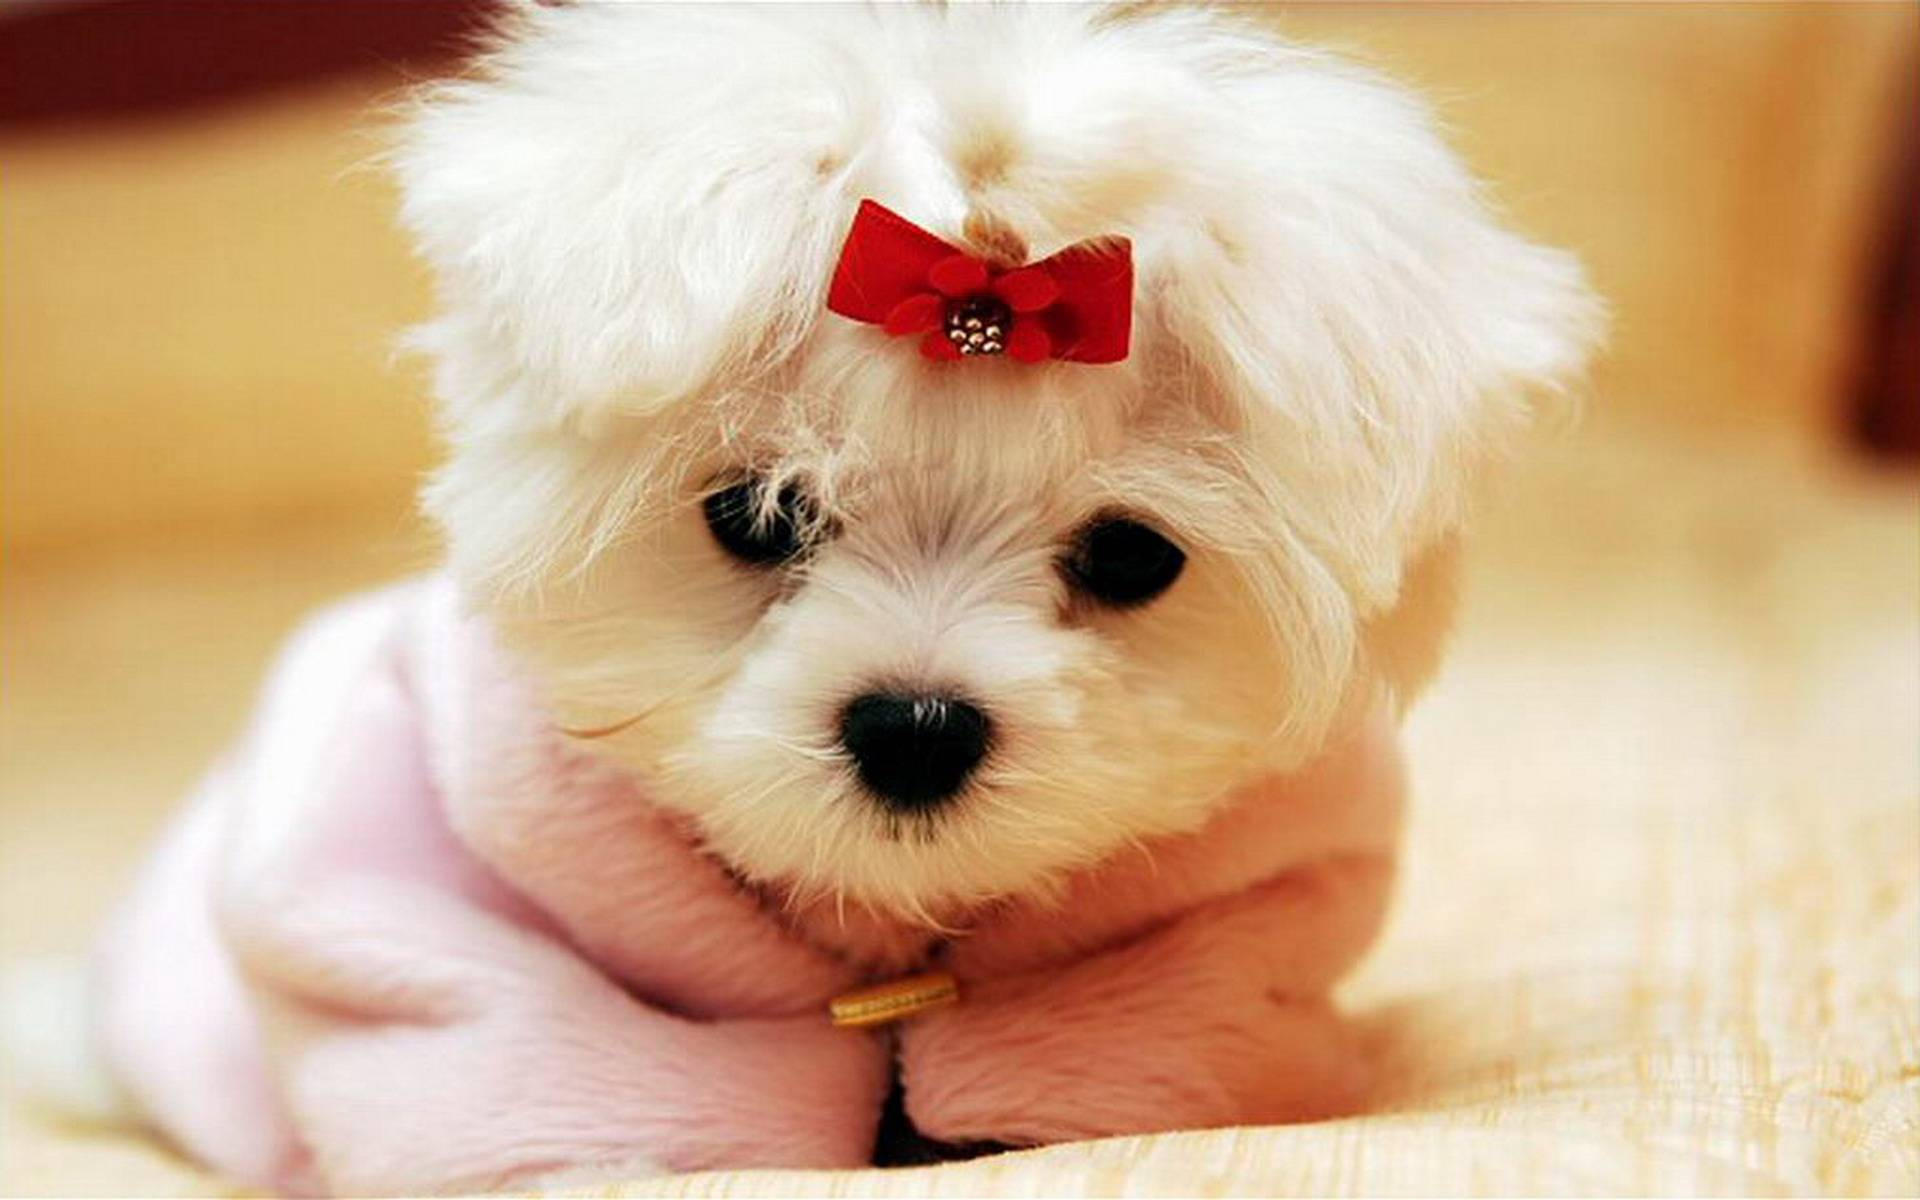 35 Cutest Dog Photo Ideas That're So Darn Adorable ...